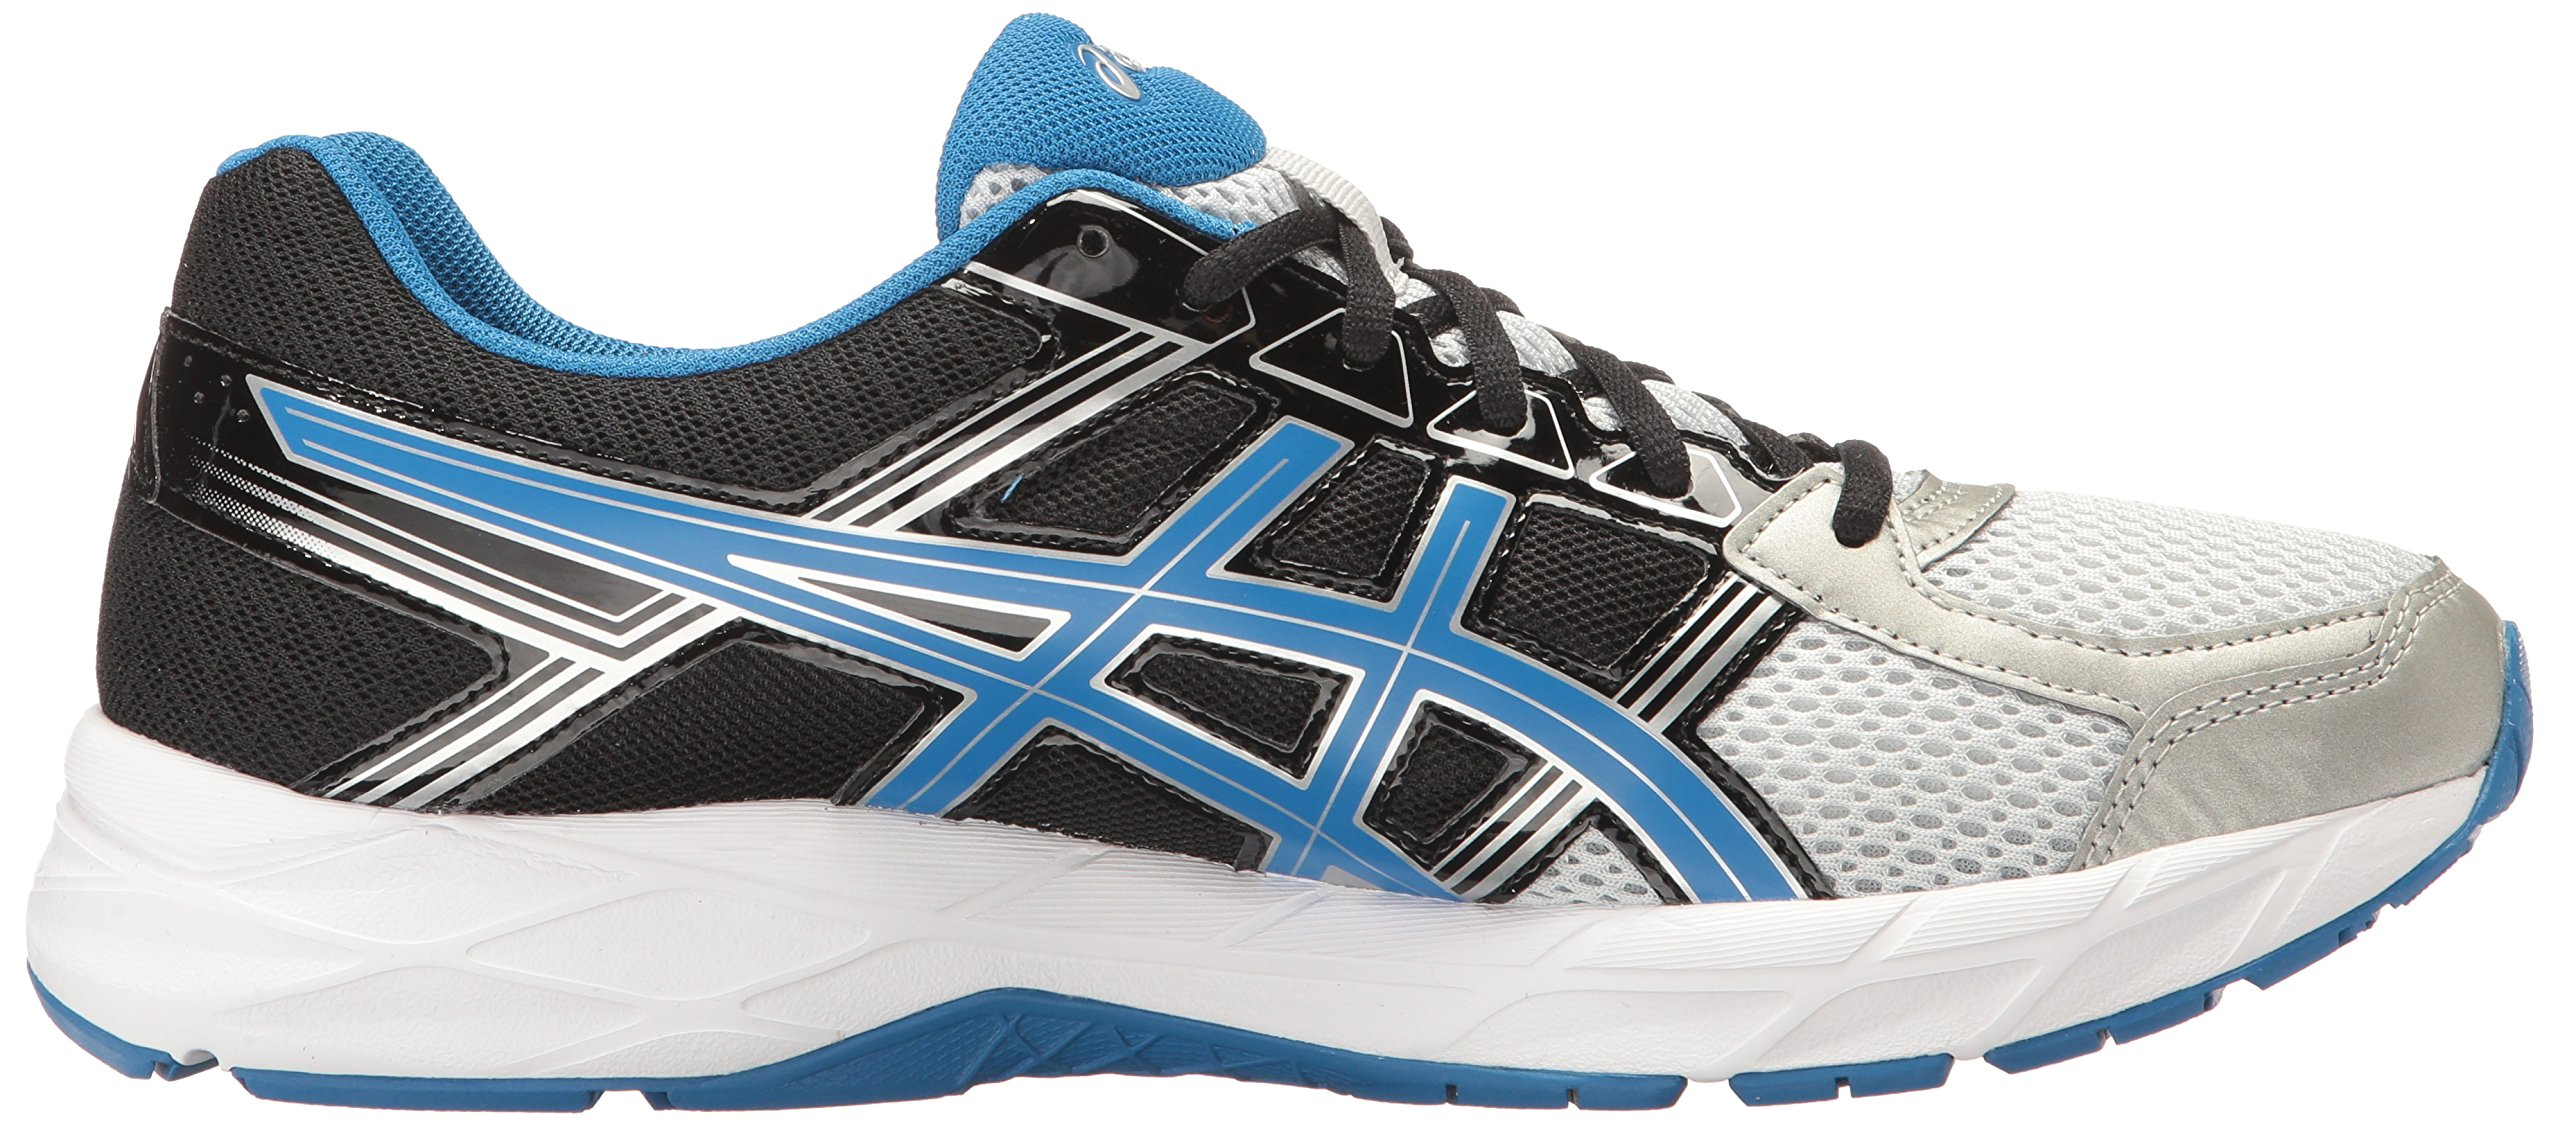 ASICS Men's Gel-Contend 4 Running Shoe, Silver/Classic Blue/Black, 7.5 M US by ASICS (Image #7)